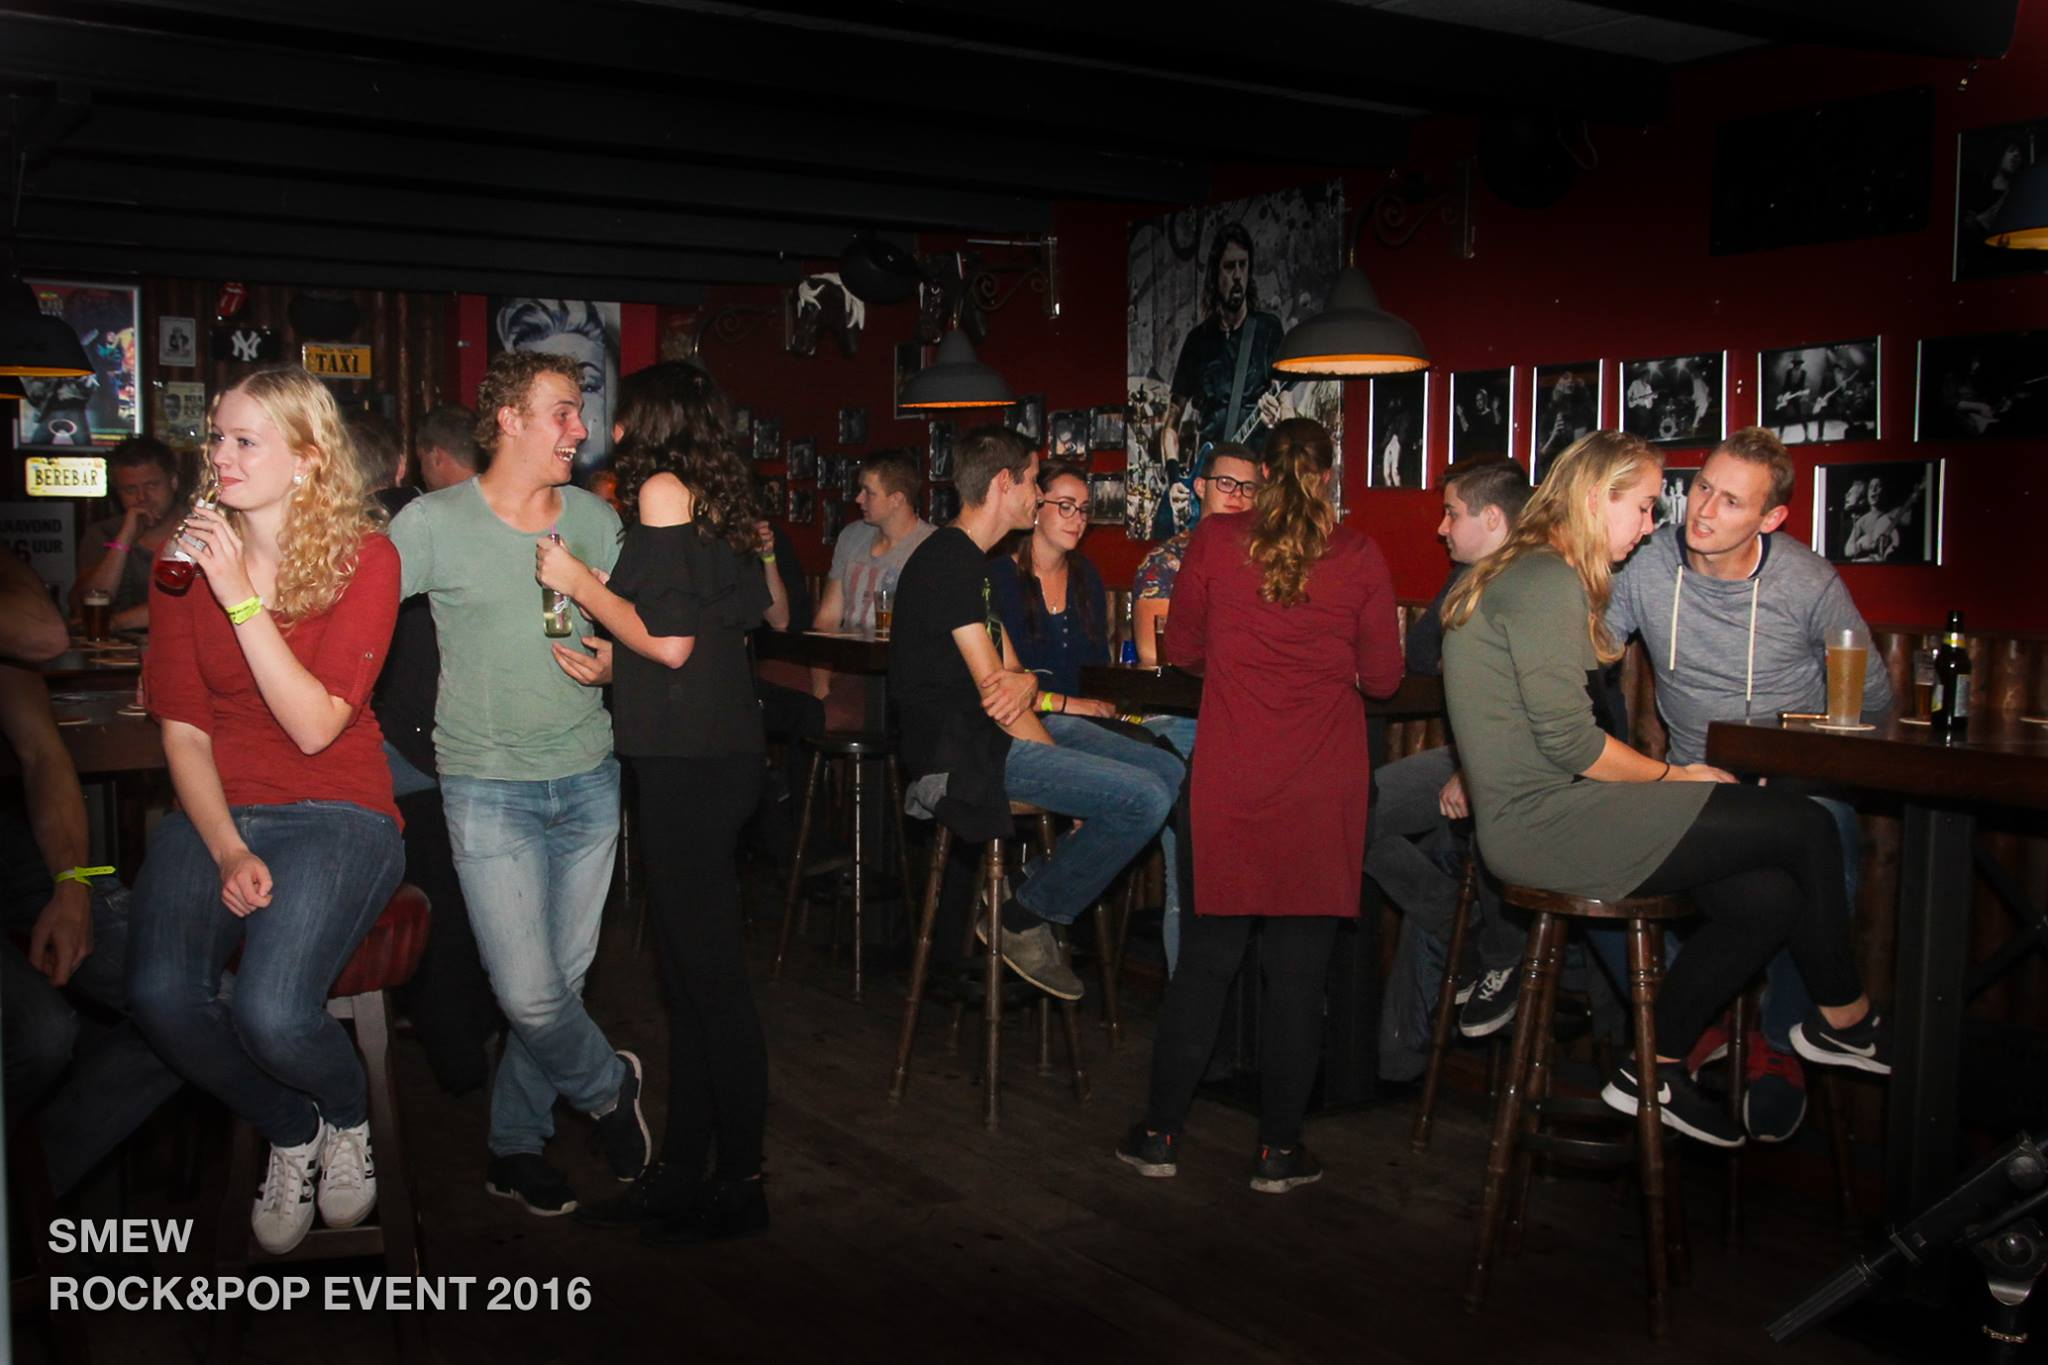 Over stichting Music Events Wervershoof